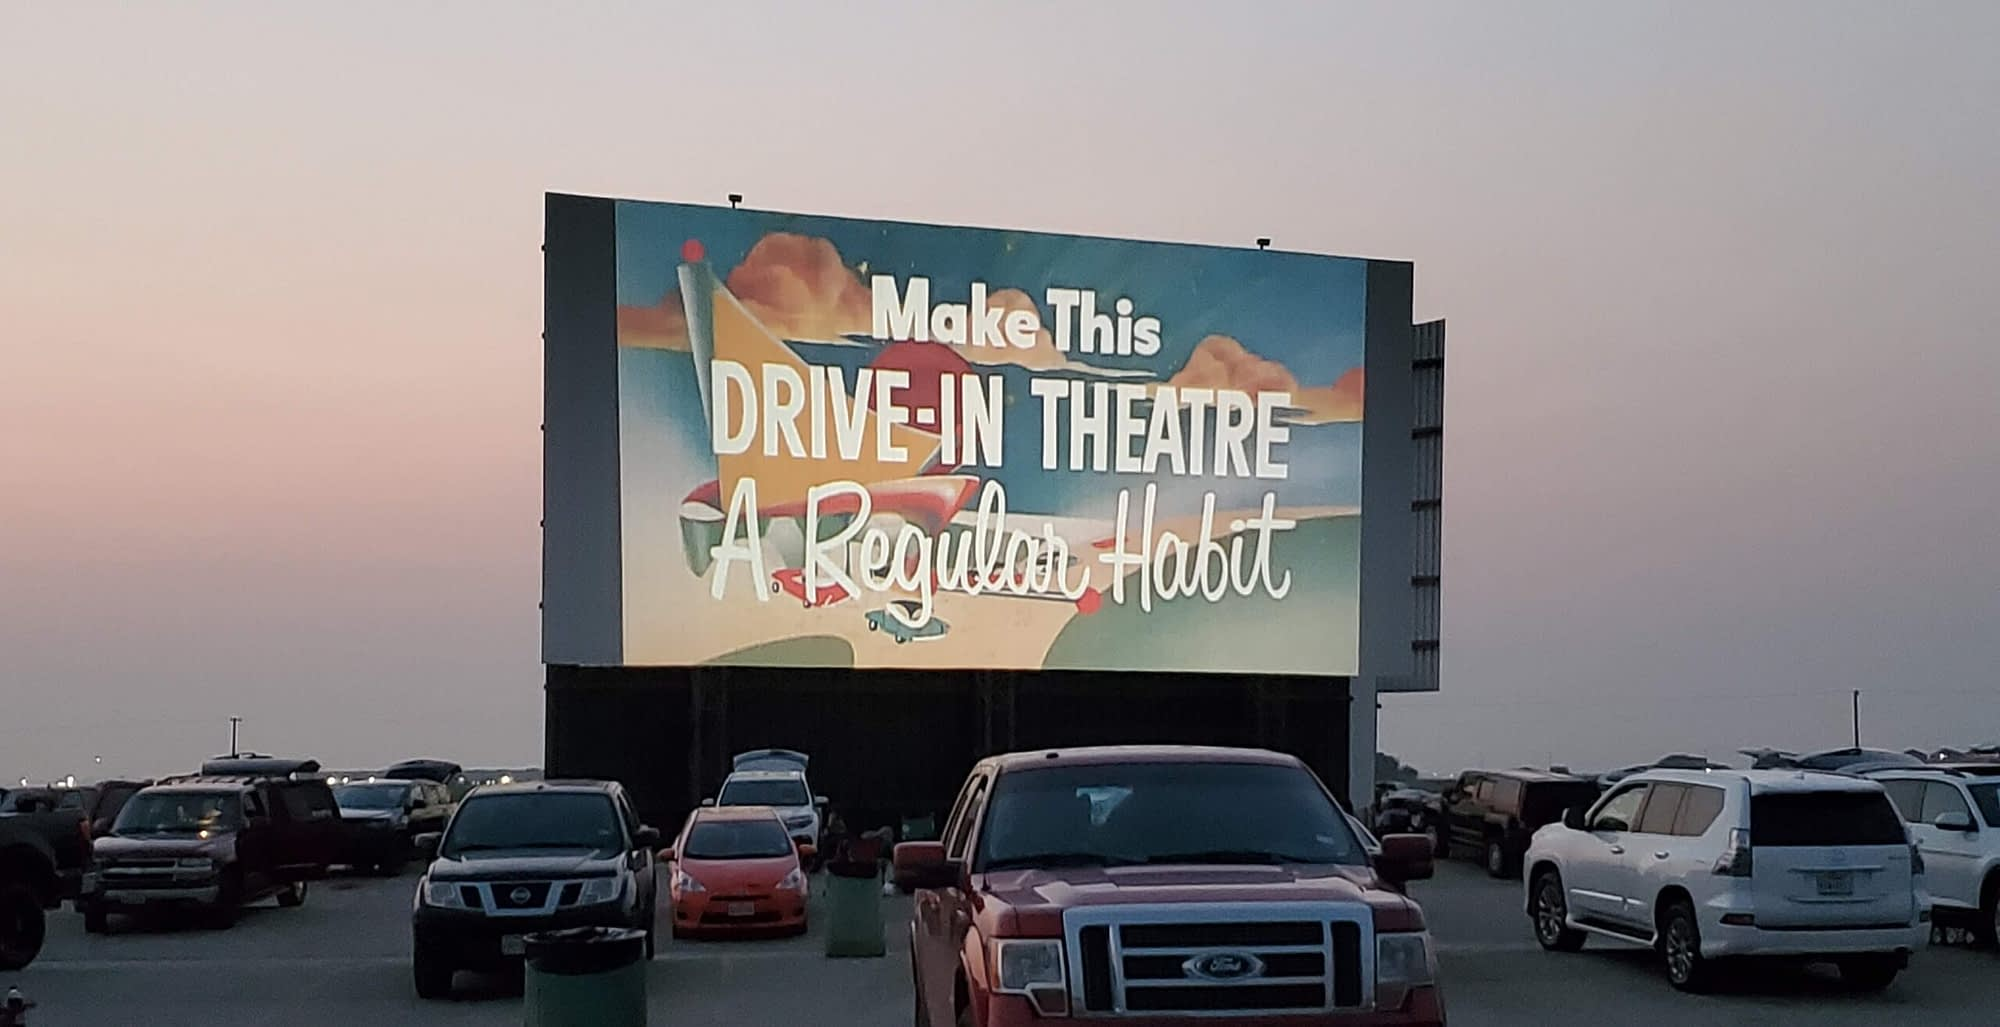 Make This Drive-In Theater a Regular Habit on the screen